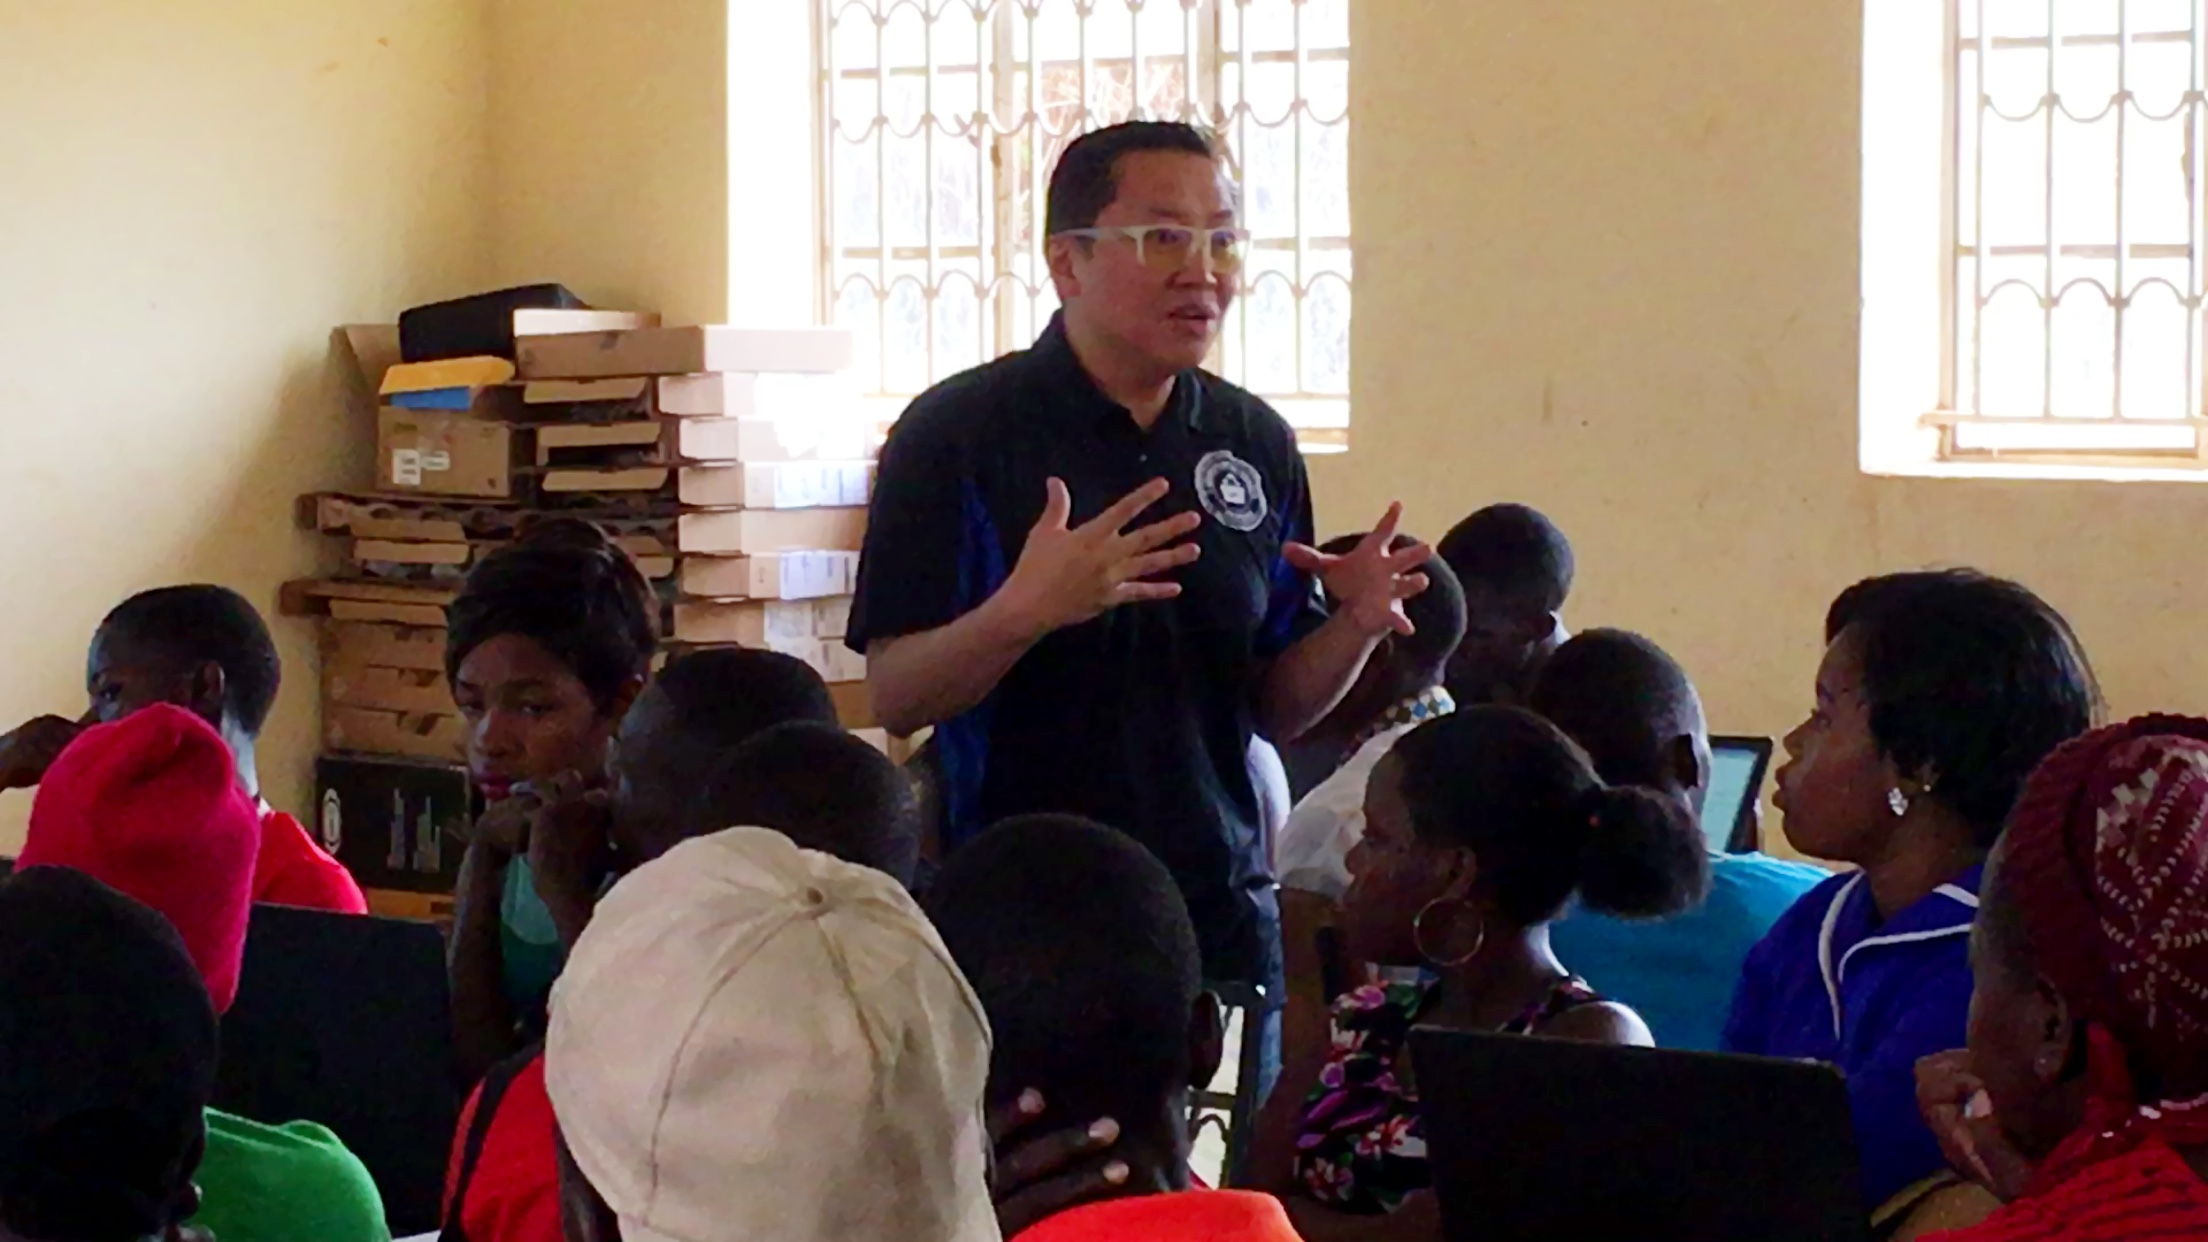 Five Inspiring Lessons I Learned About Life (And Business) from Teaching in Uganda #techforgood